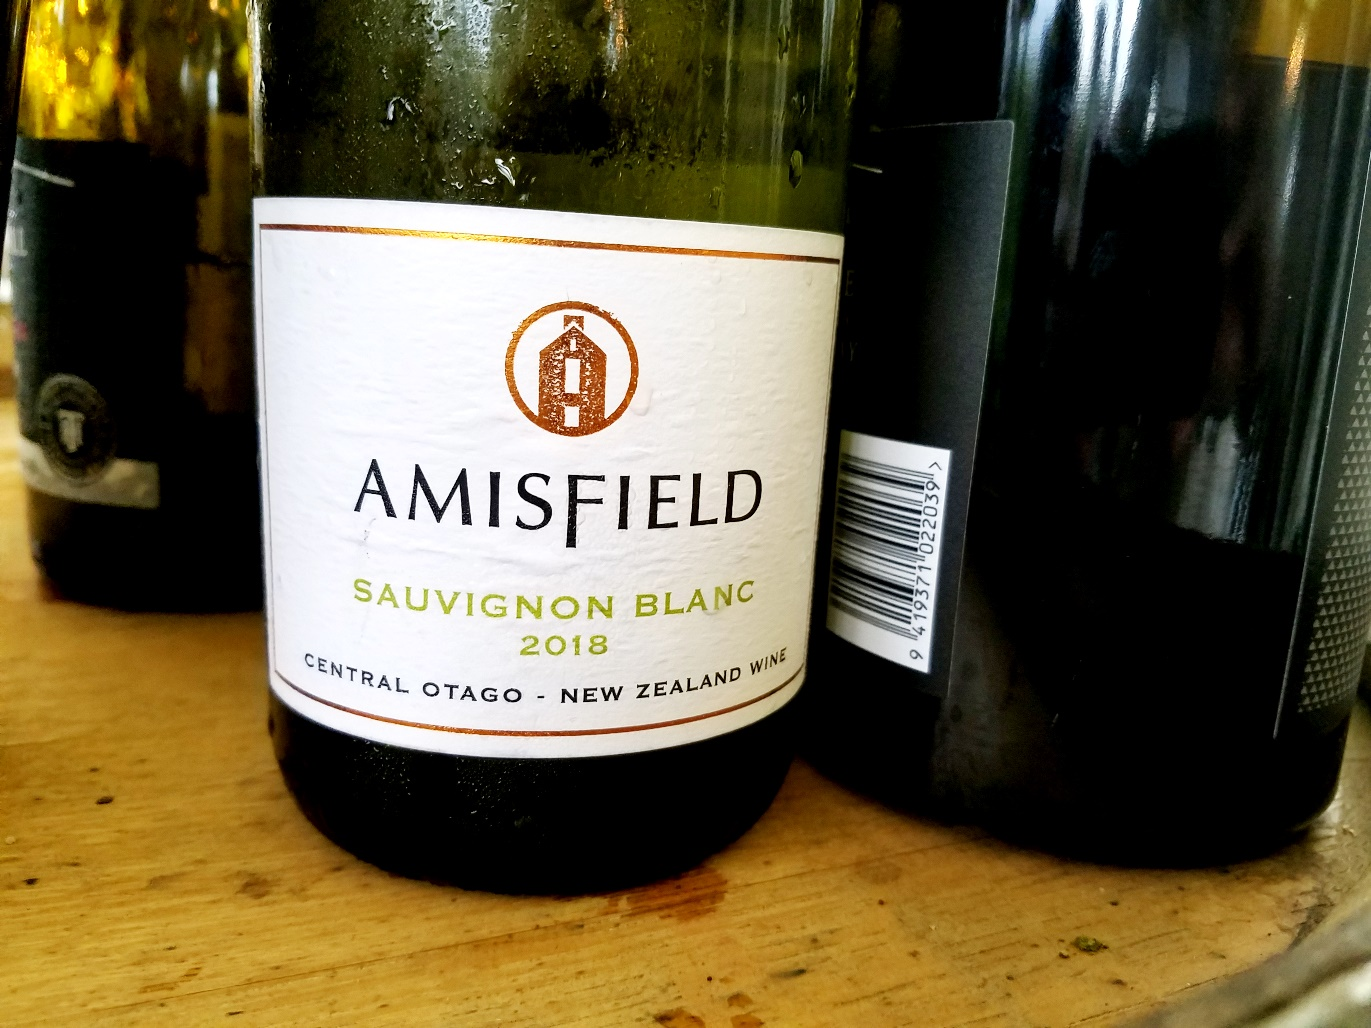 Amisfield, Sauvignon Blanc 2018, Central Otago, New Zealand, Wine Casual